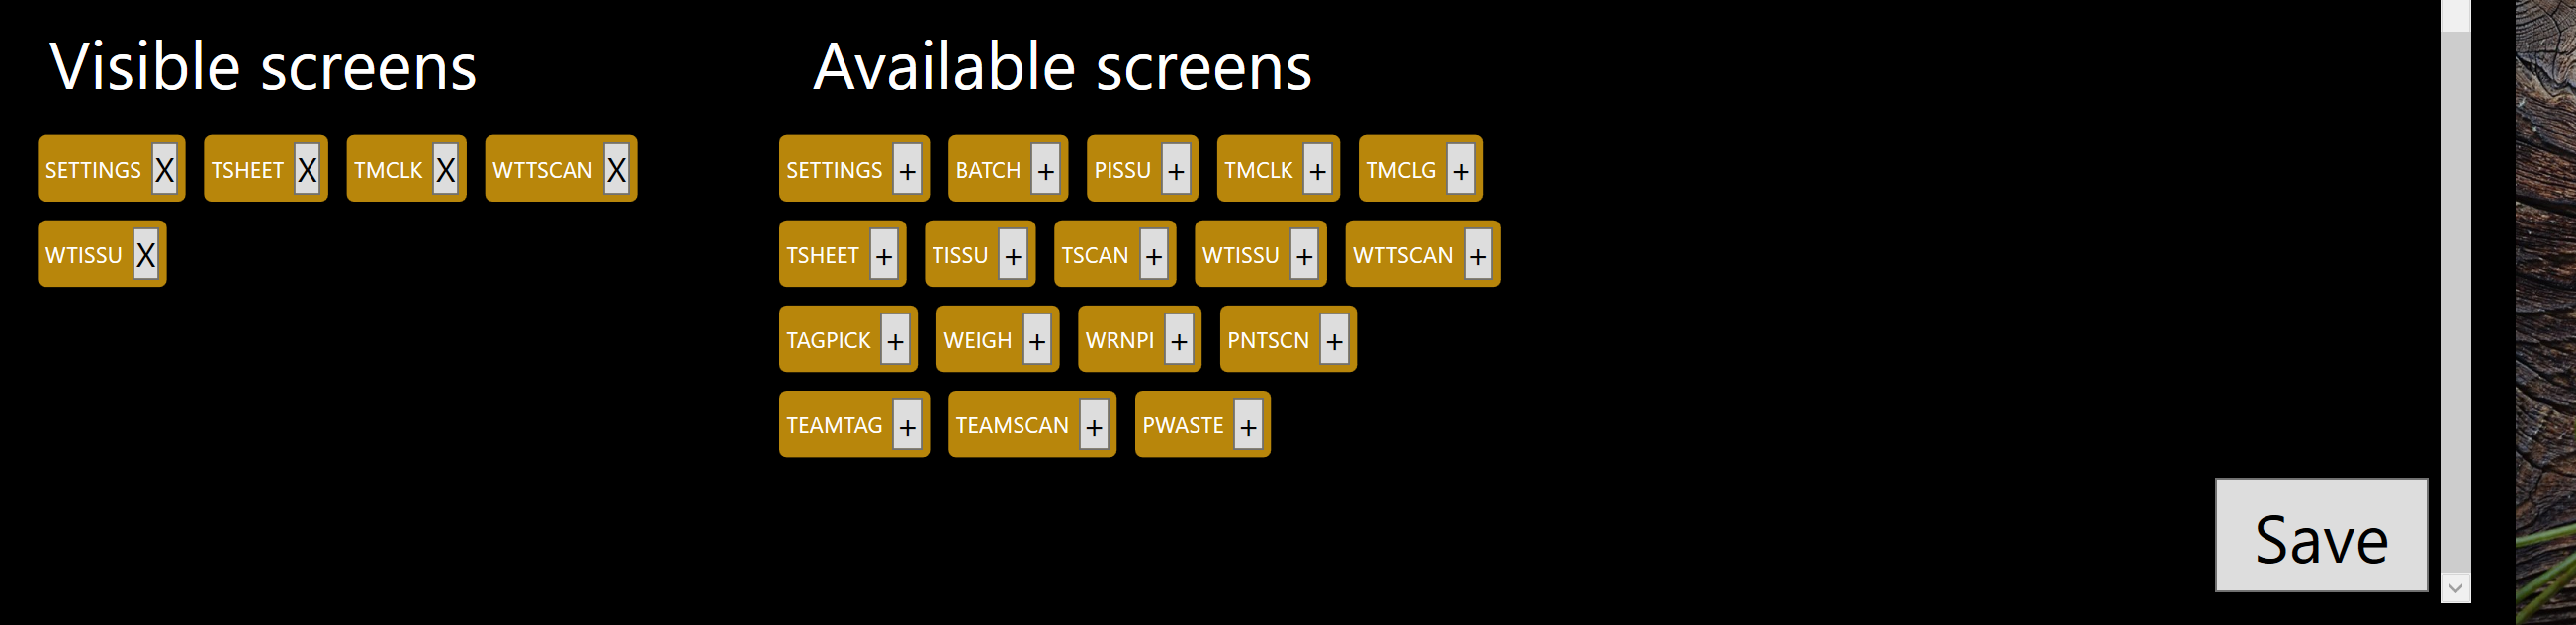 Available screens